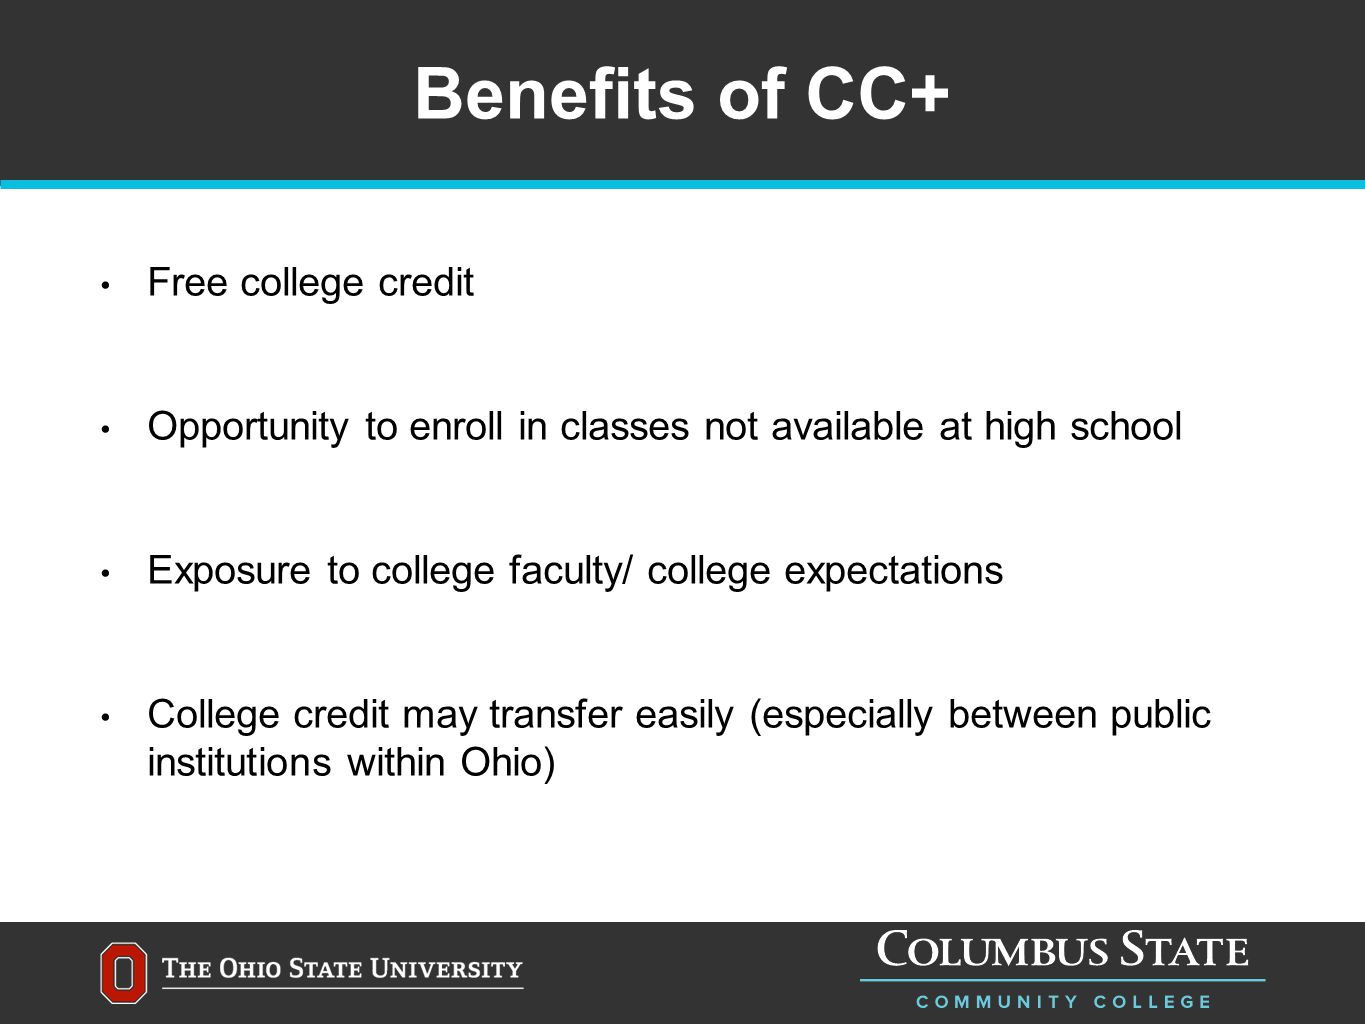 Benefits of CC+ Free college credit Opportunity to enroll in classes not available at high school Exposure to college faculty/ college expectations College credit may transfer easily (especially between public institutions within Ohio)